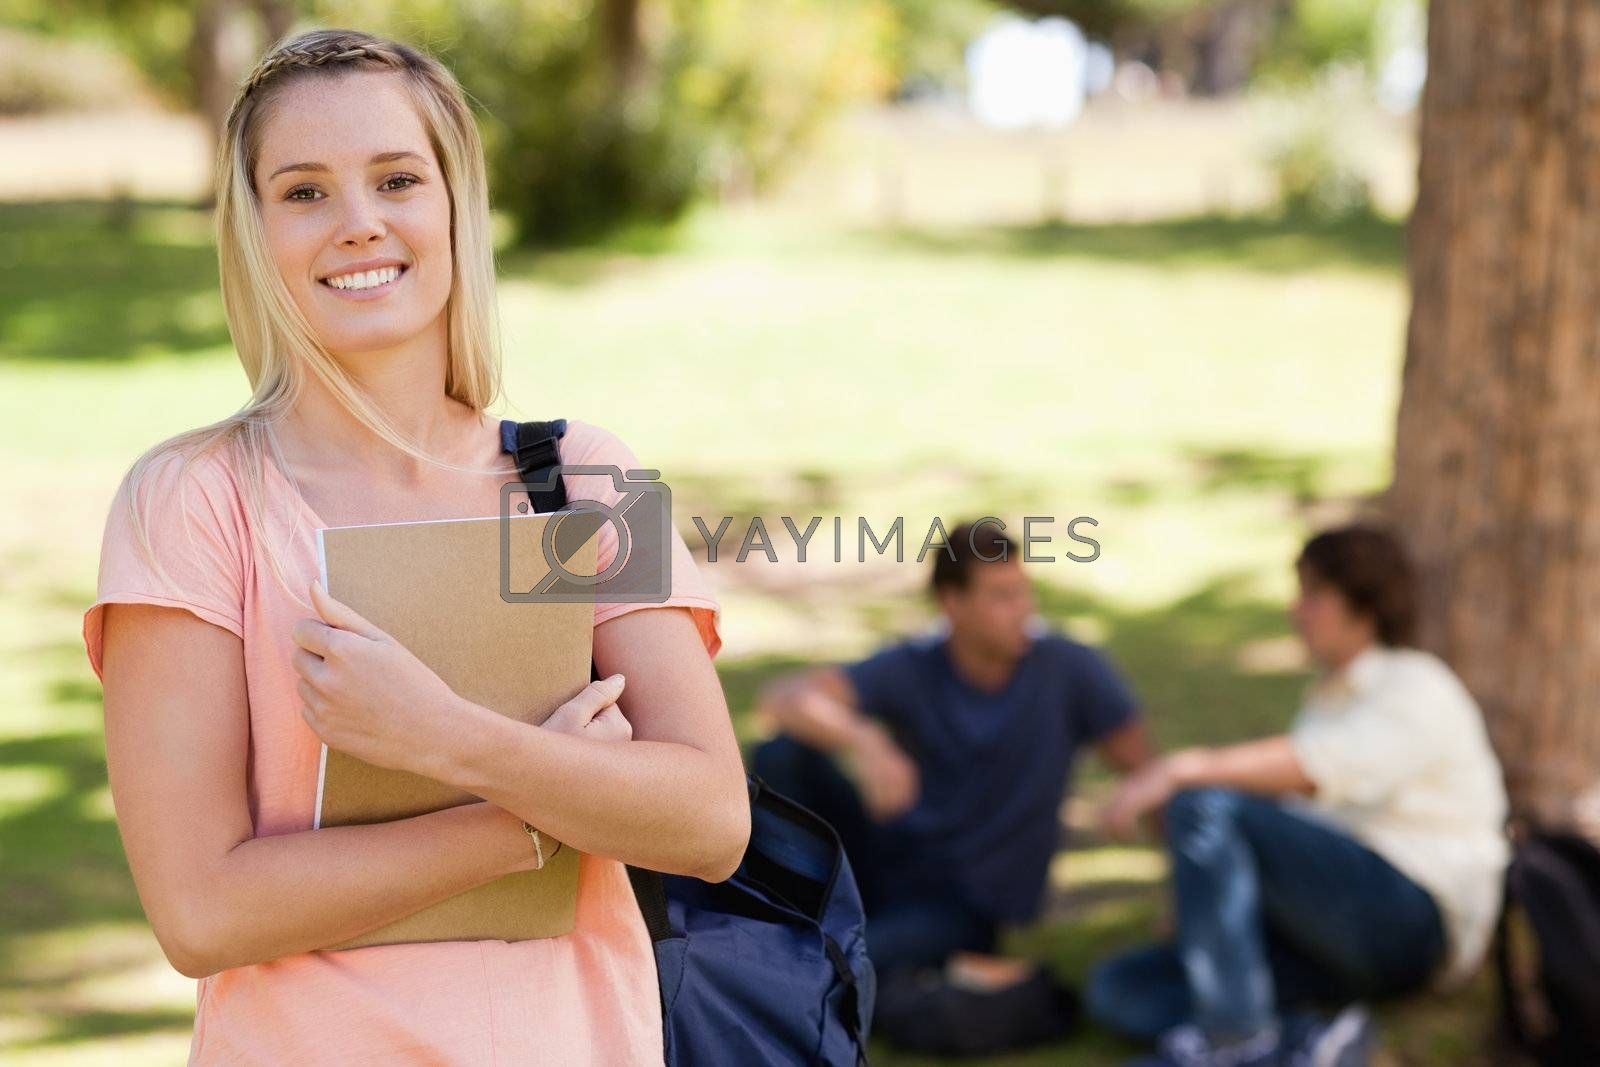 Portrait of a pretty girl smiling while holding a textbook in a park with friends in background